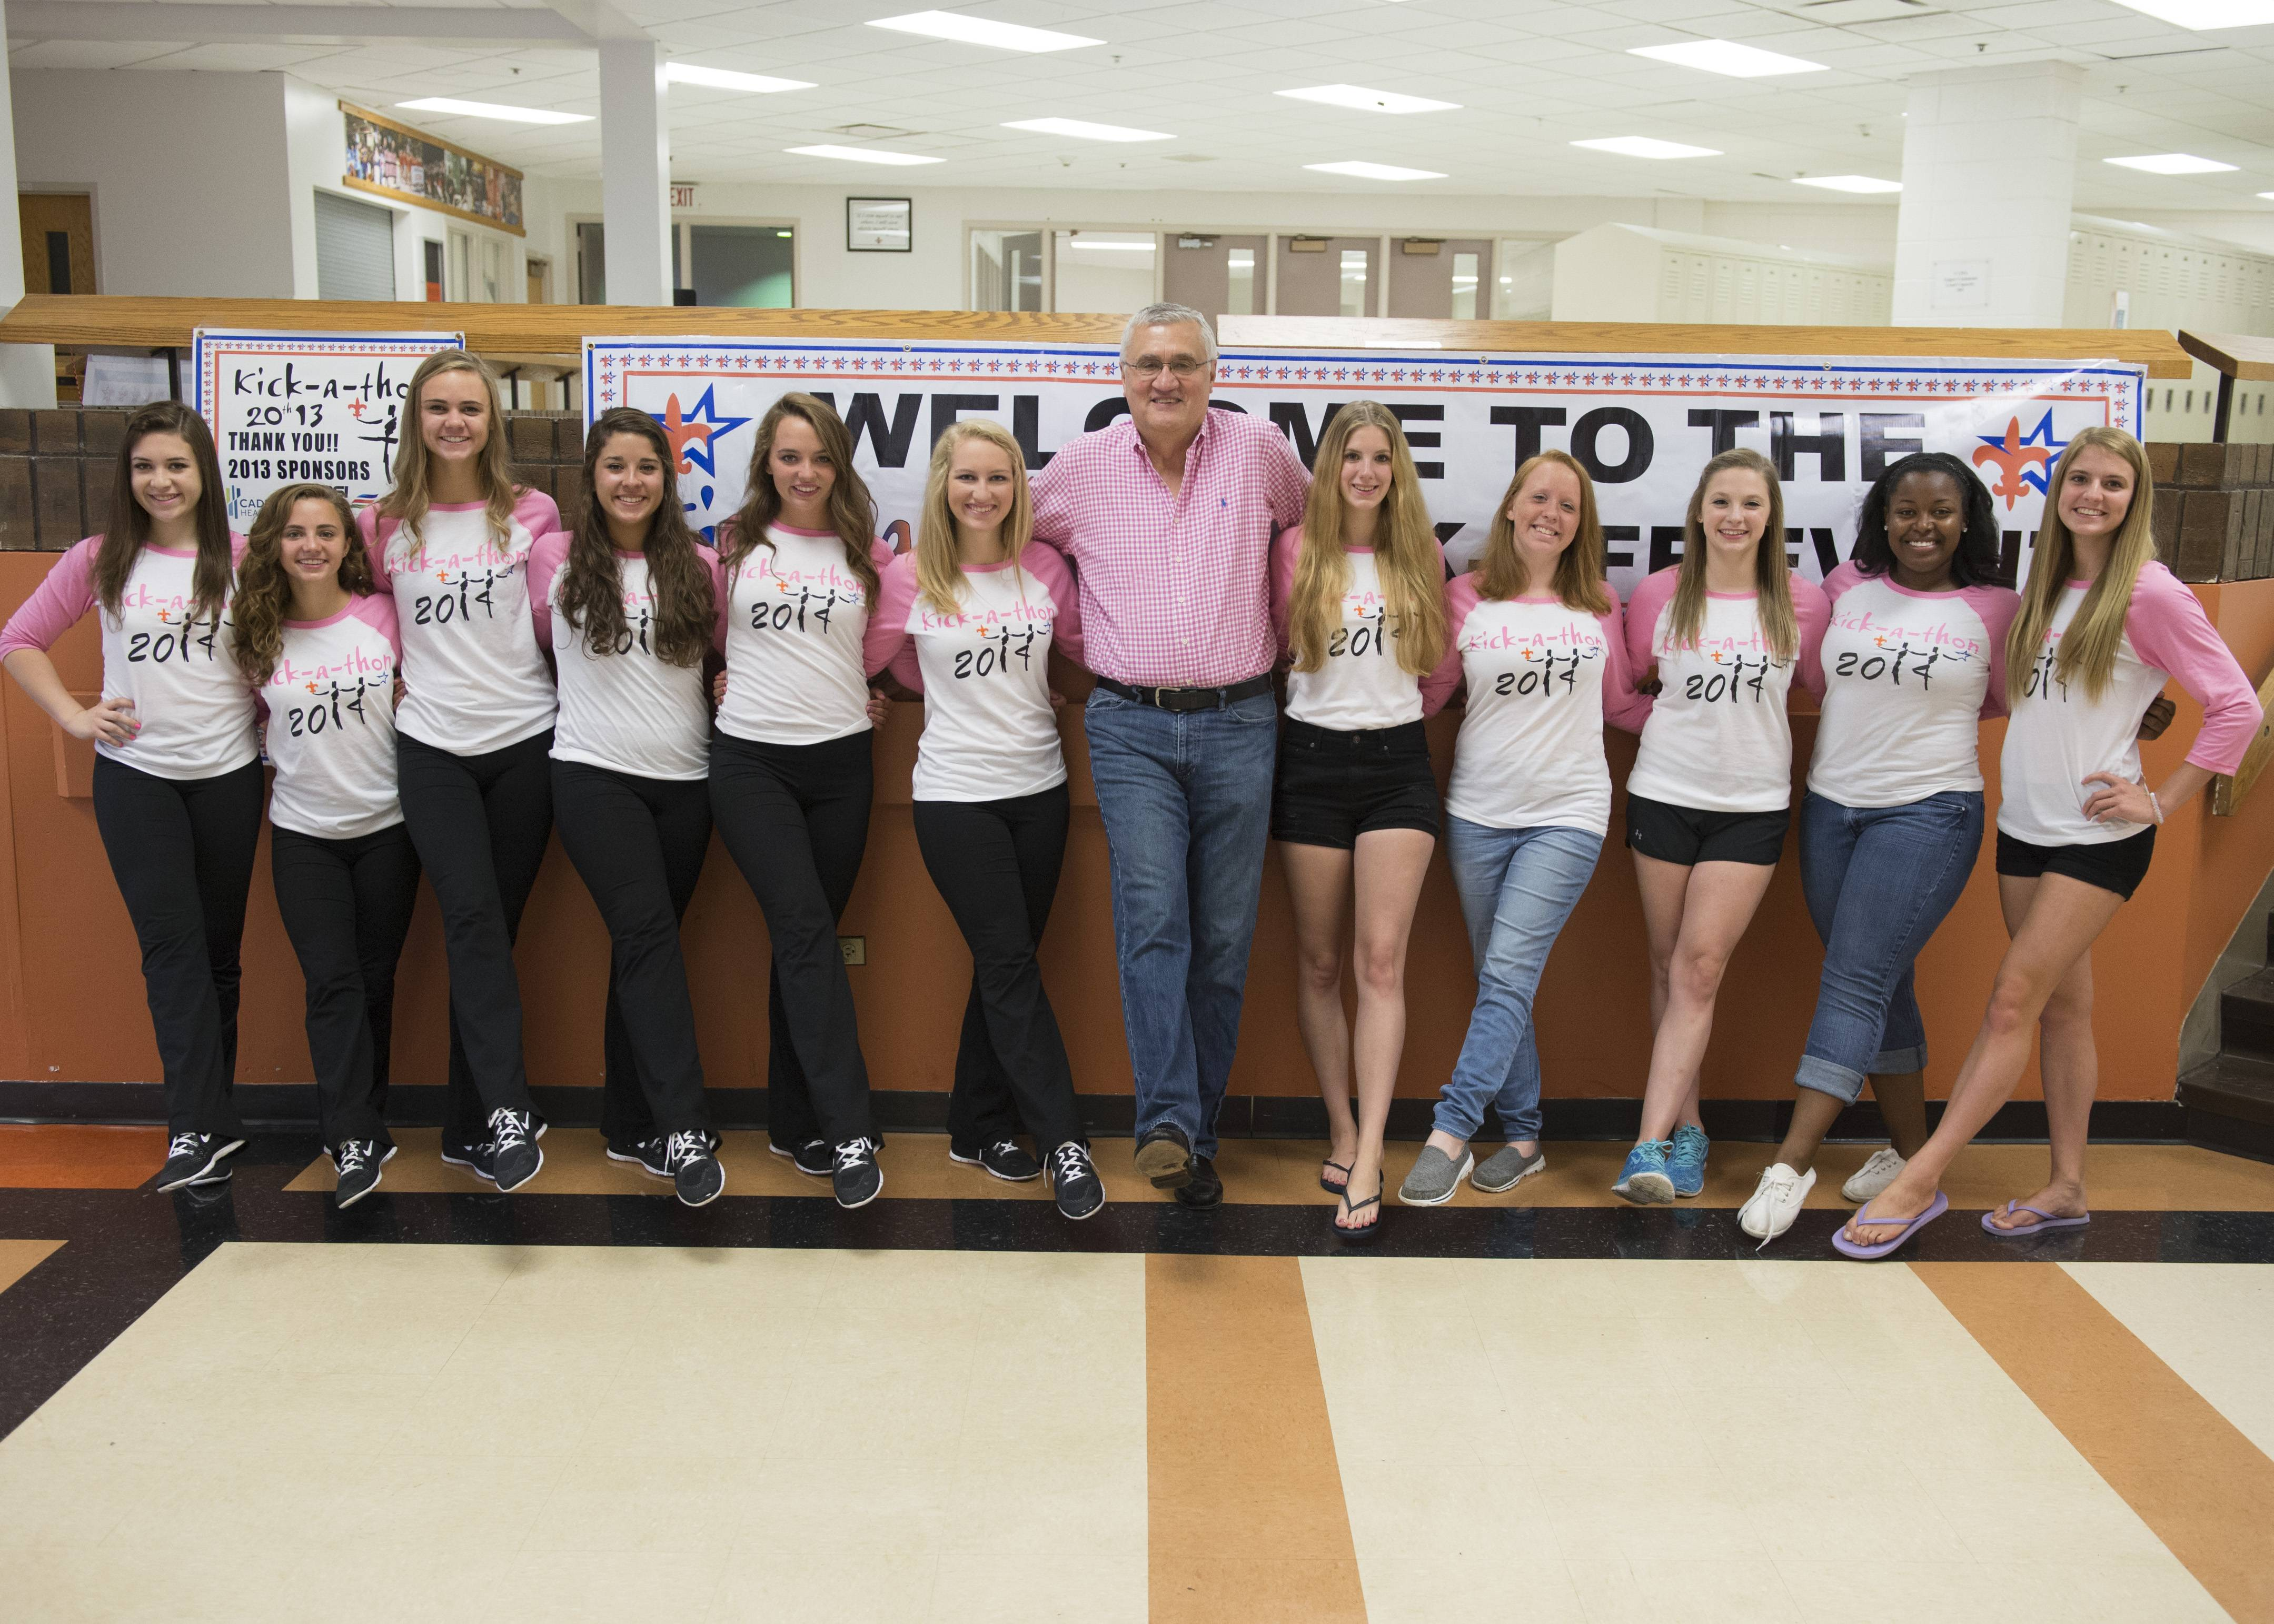 St. Charles Mayor Raymond Rogina joins with St. Charles senior drill team members: Katie Schmidt, Elisabeth Grenfell, MacKenzie Craney, Bella Reyes, Maggie Sullivan, Mallory Cook, Sina Hermes, Bailey Moberly, Isabel Miller, Eleisee Pettigrew and Quinn Samanic.